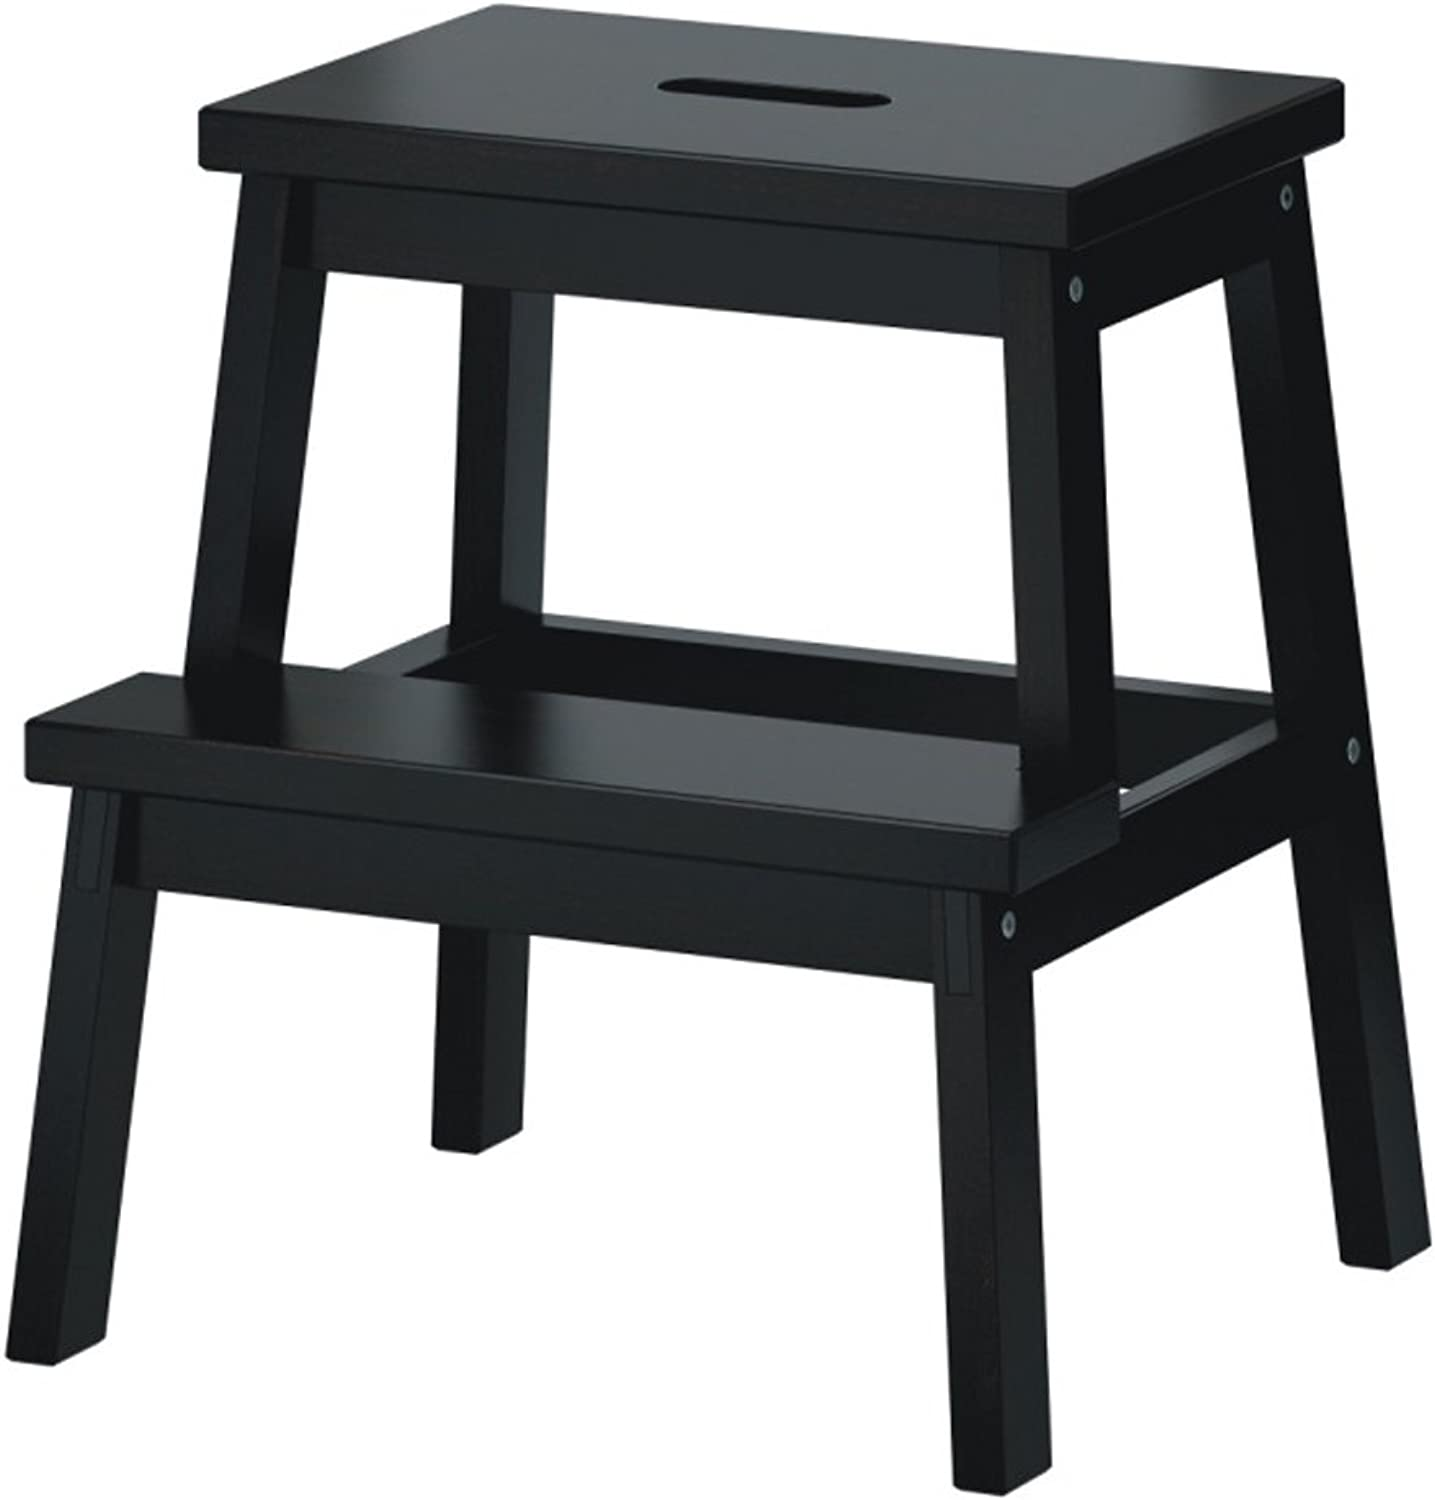 ZPWSNH 2 Steps Solid Wood Step Stool Kitchen Step Stool Stool Simple Home, White Black Step Stool (color   Black)